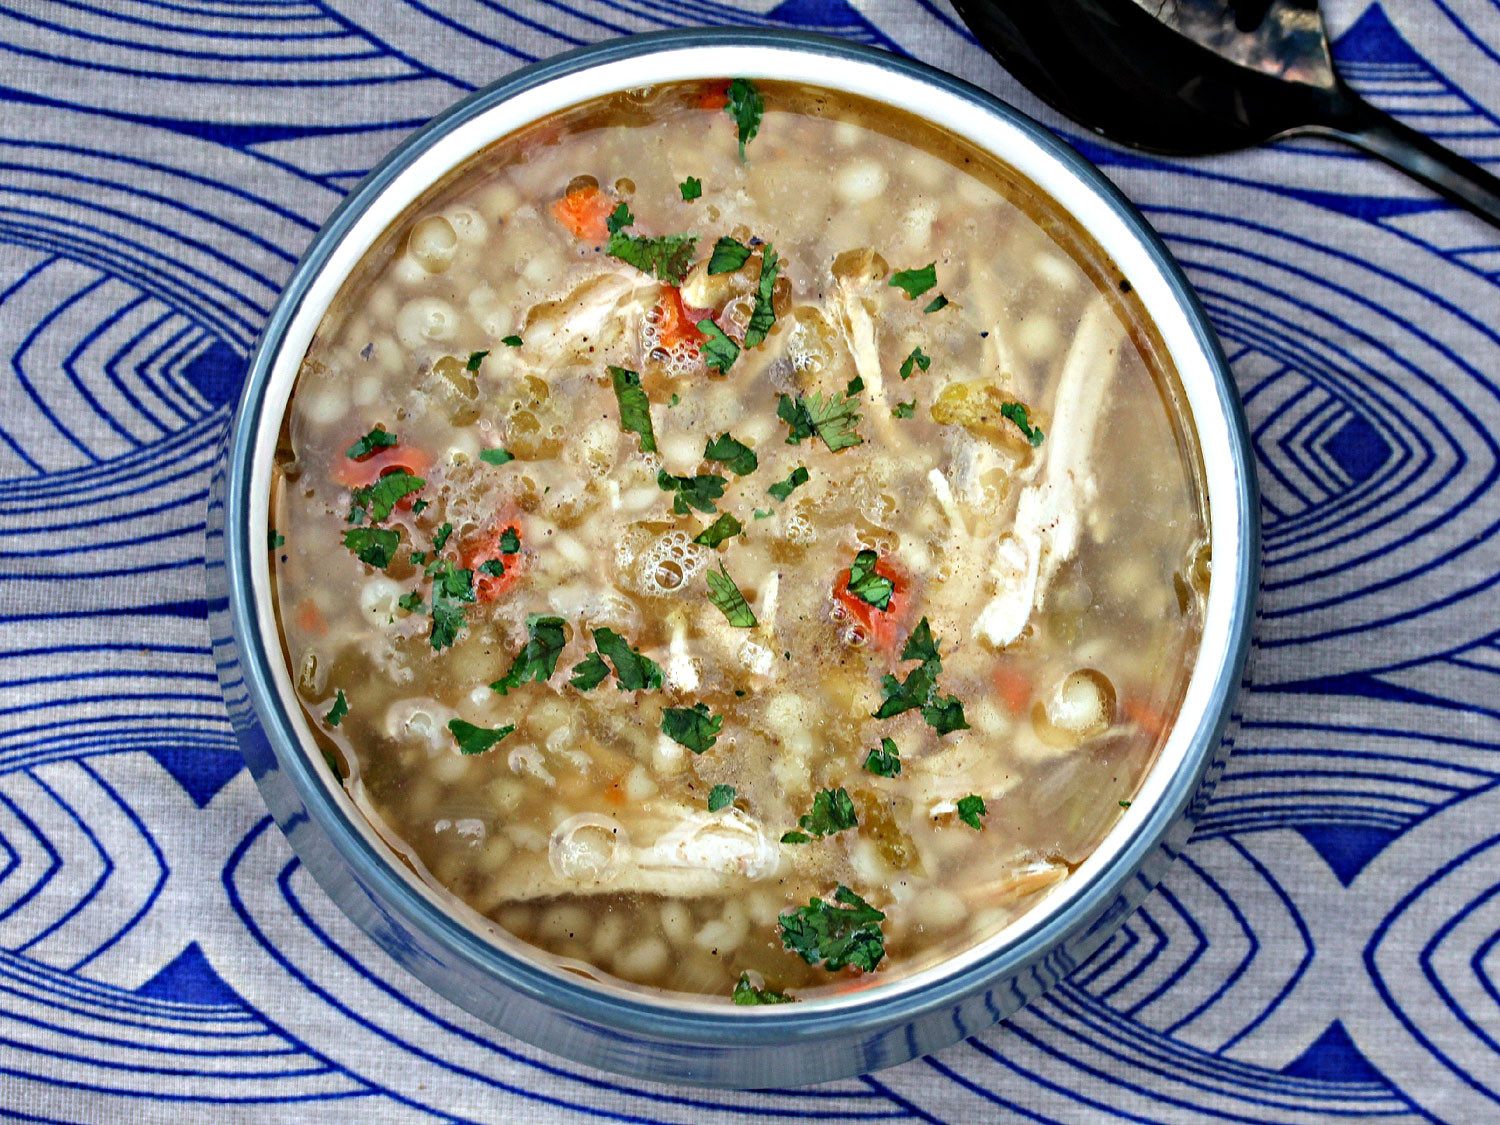 Turkey Soup From Thanksgiving Leftovers  3 Easy Slow Cooker Recipes for Your Leftover Turkey